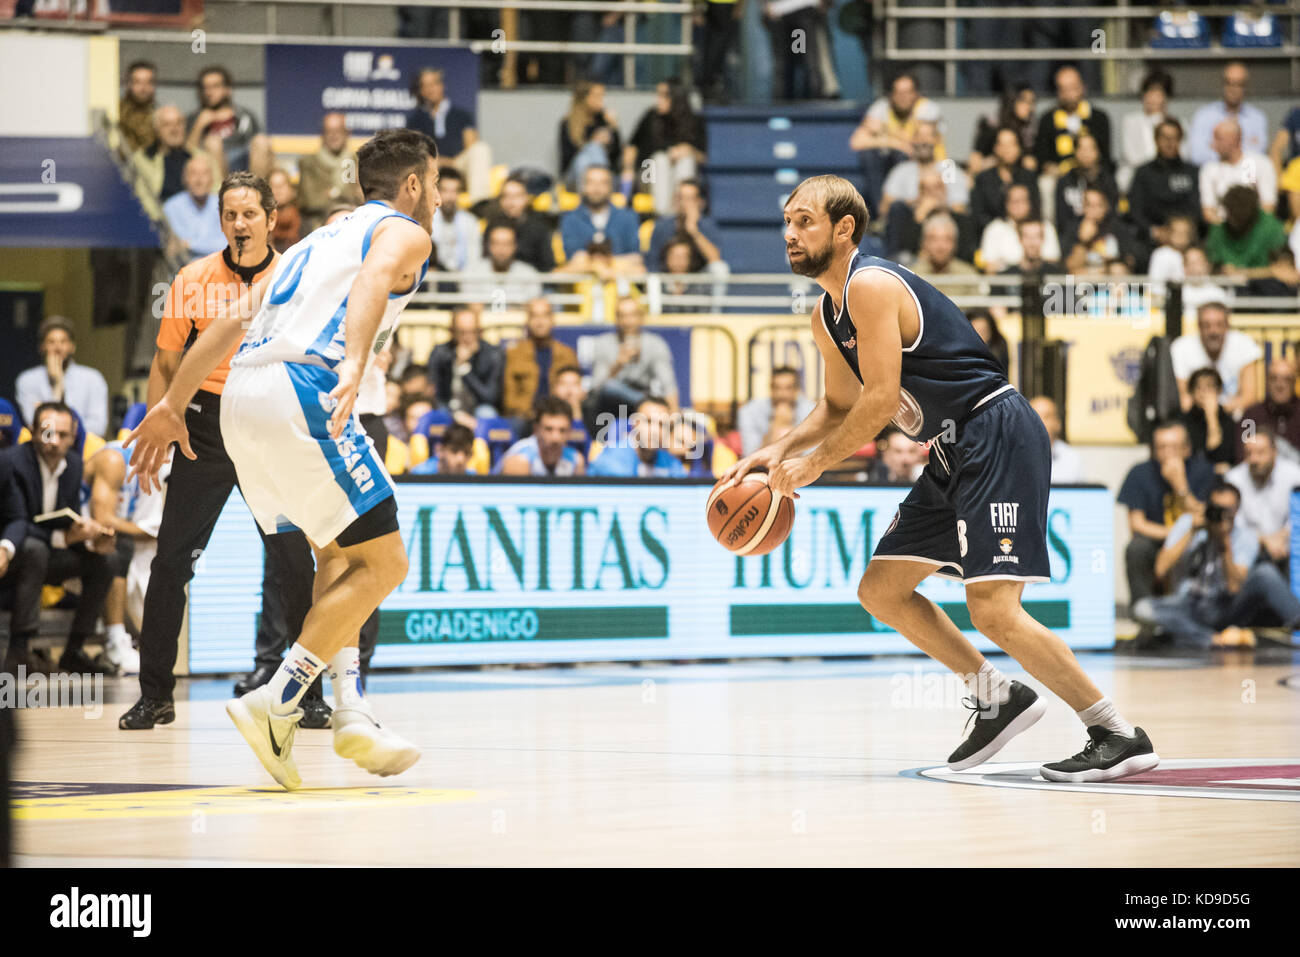 Turin, Italy 7th october 2017. Giuseppe Poeta during the Serie A an Basketball match Fiat Torino Auxilium vs Dinamo Stock Photo